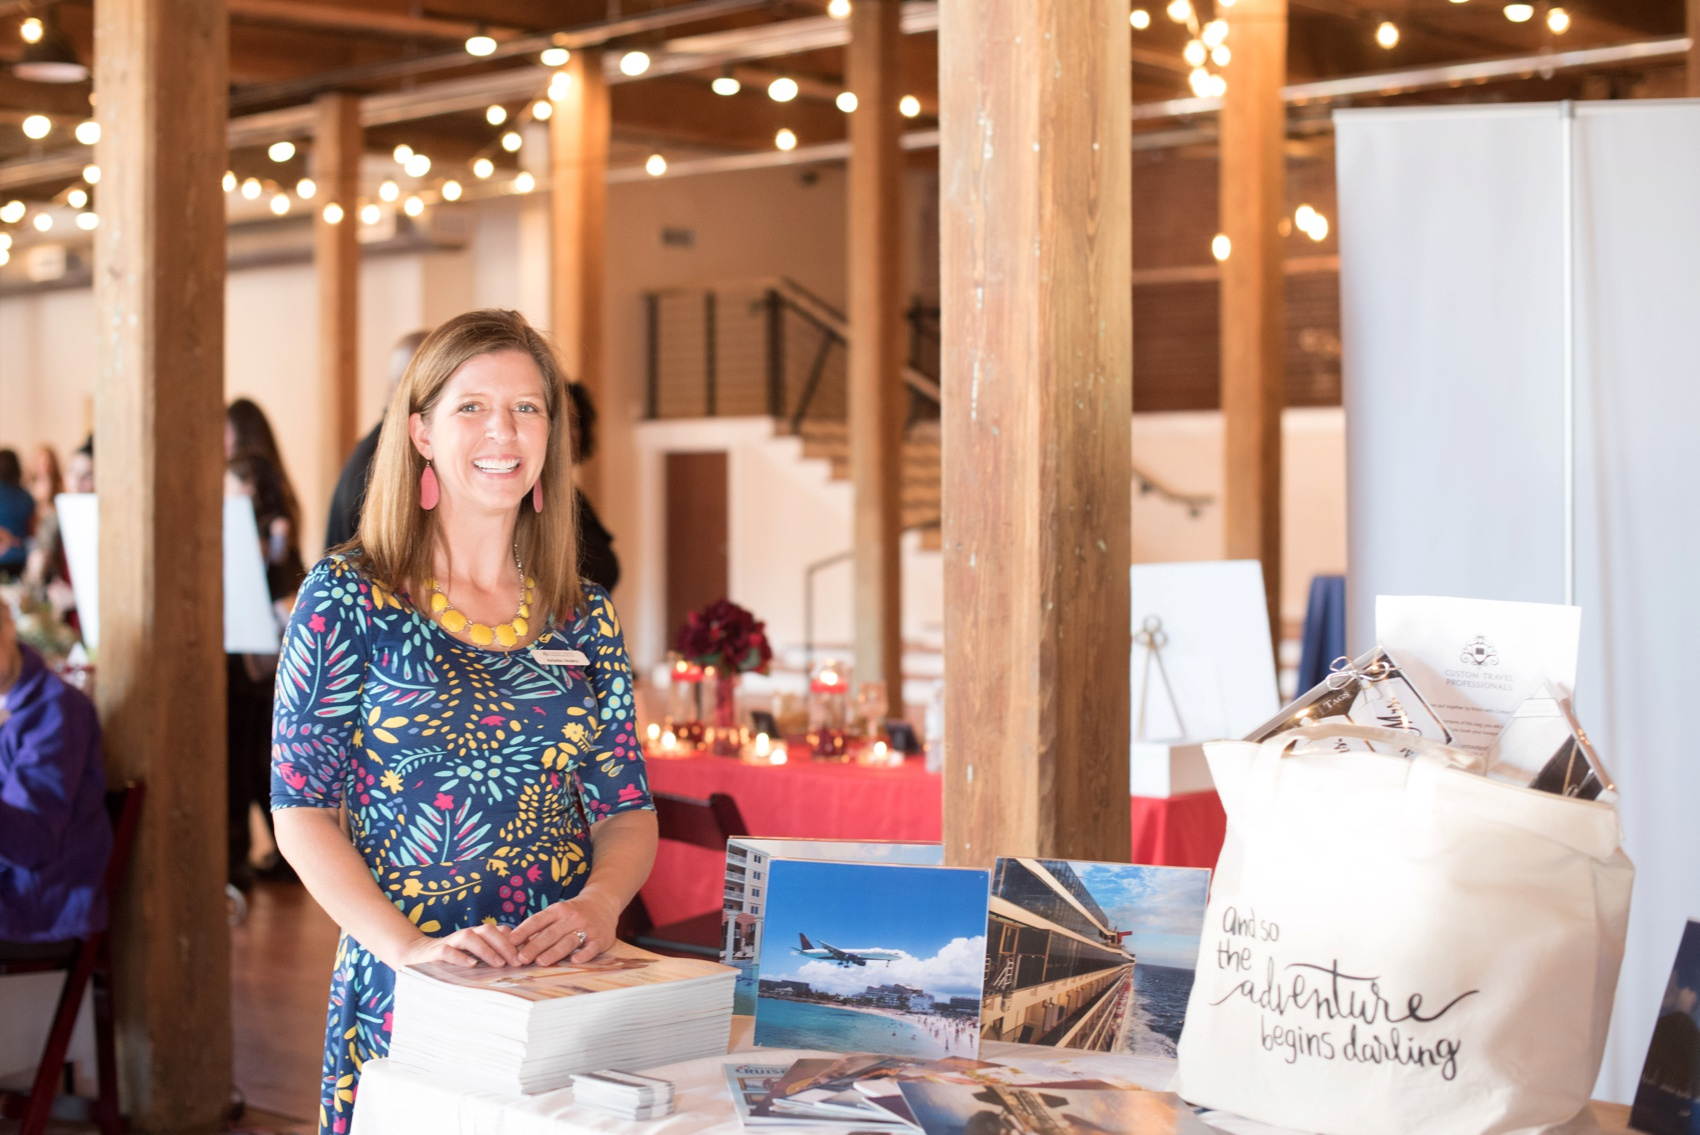 The Cloth Mill North Carolina wedding vendor showcase. Raleigh, Durham and Hillsborough vendors at a rustic, modern location. Table display of travel agent Custom Travel Professionals for honeymoon planning.